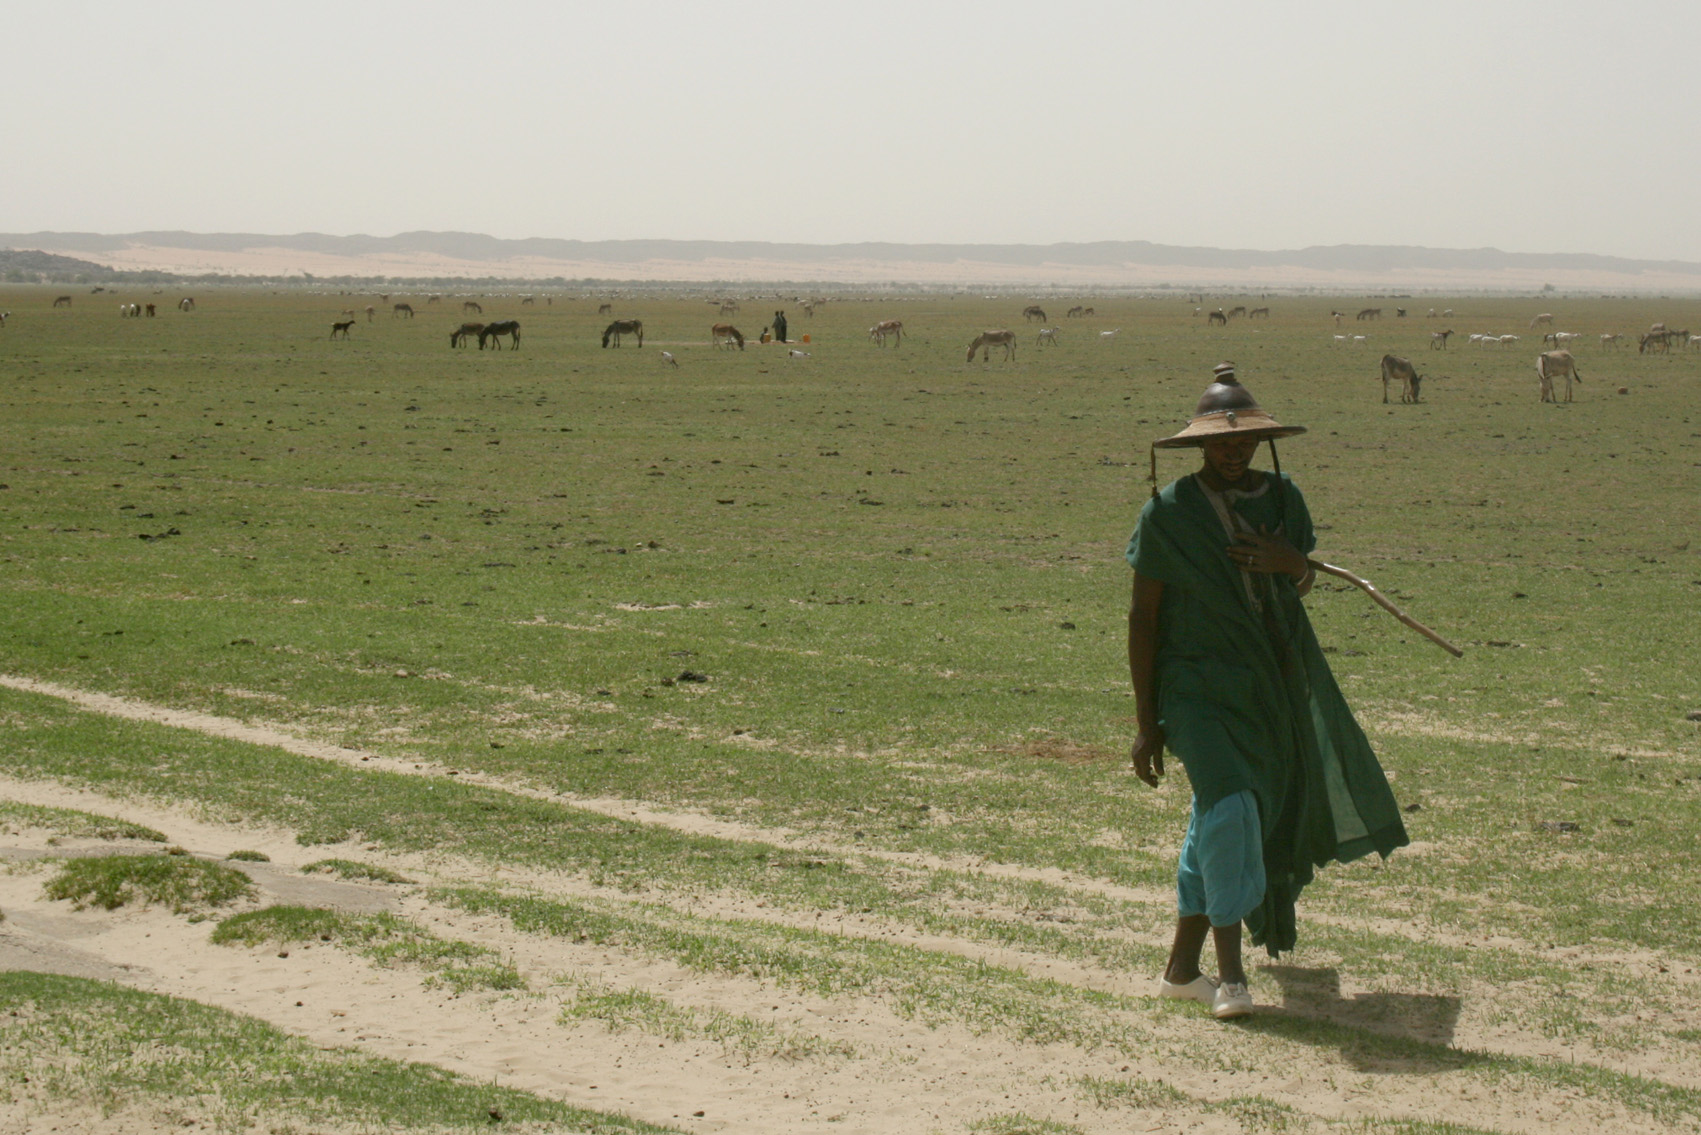 Lactib, a pastoralist in northern Mali who says his animals are small and weak because of poor rainfalls